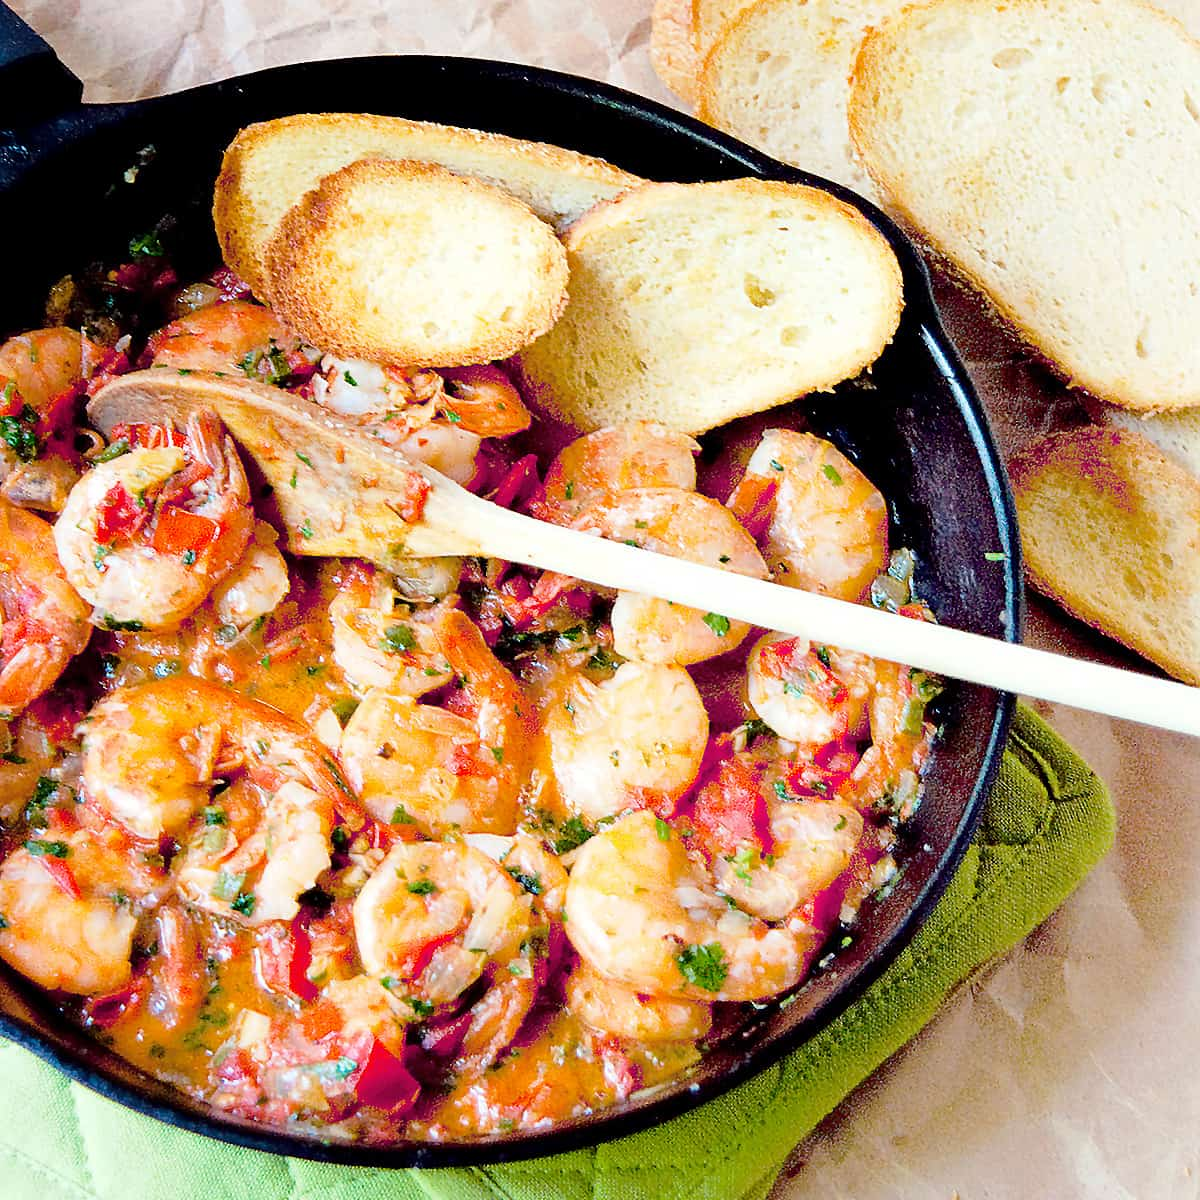 Cilantro Lime Shrimp in a cast iron skillet with garlic bread on the side.